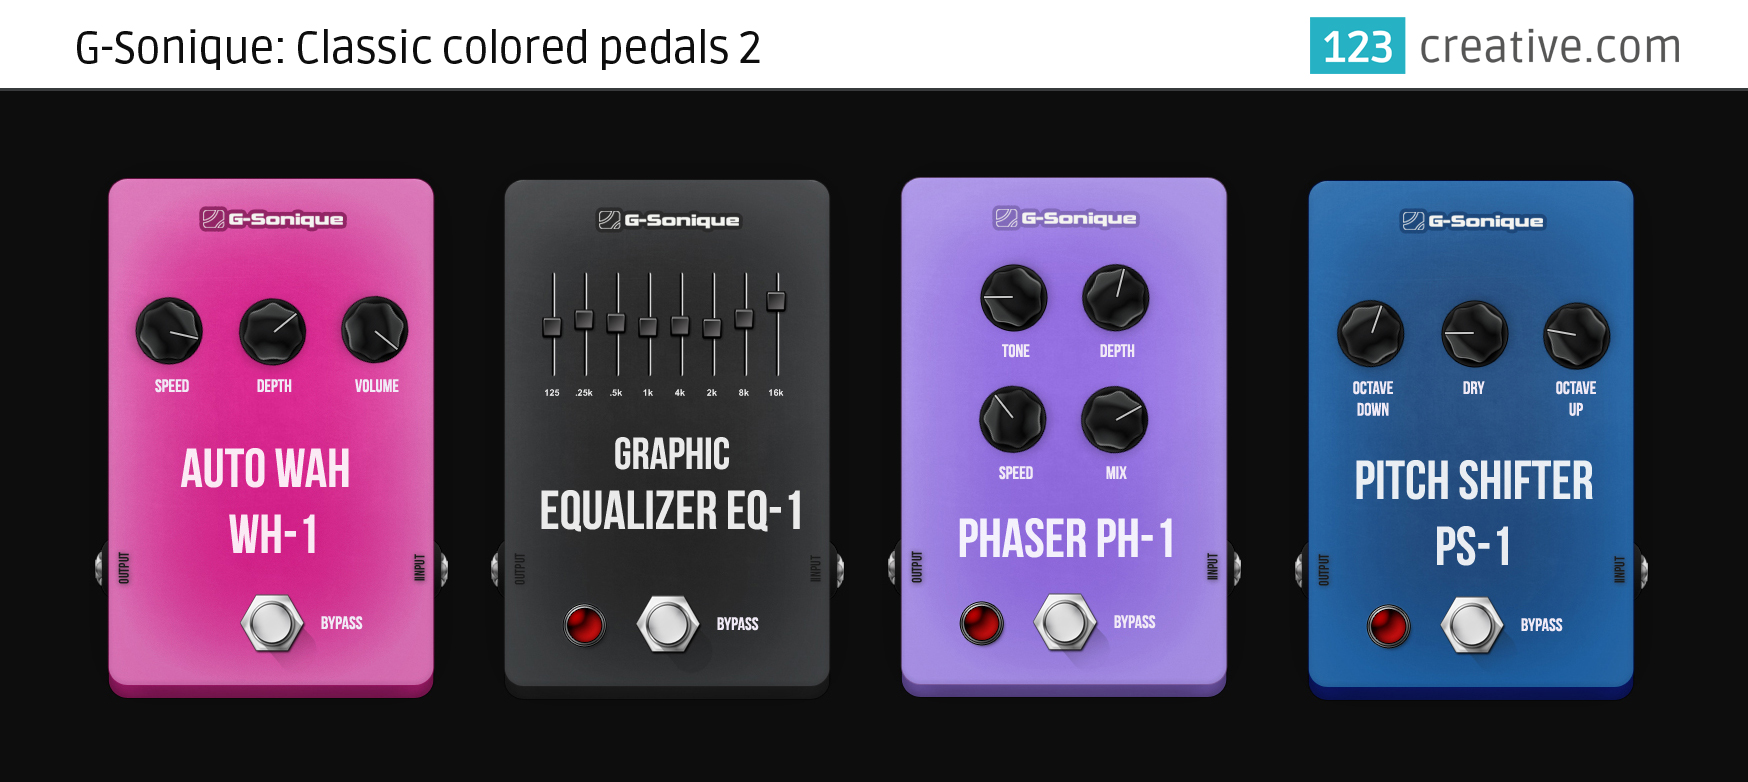 G-Sonique: Classic colored pedals 2: 123creative.com